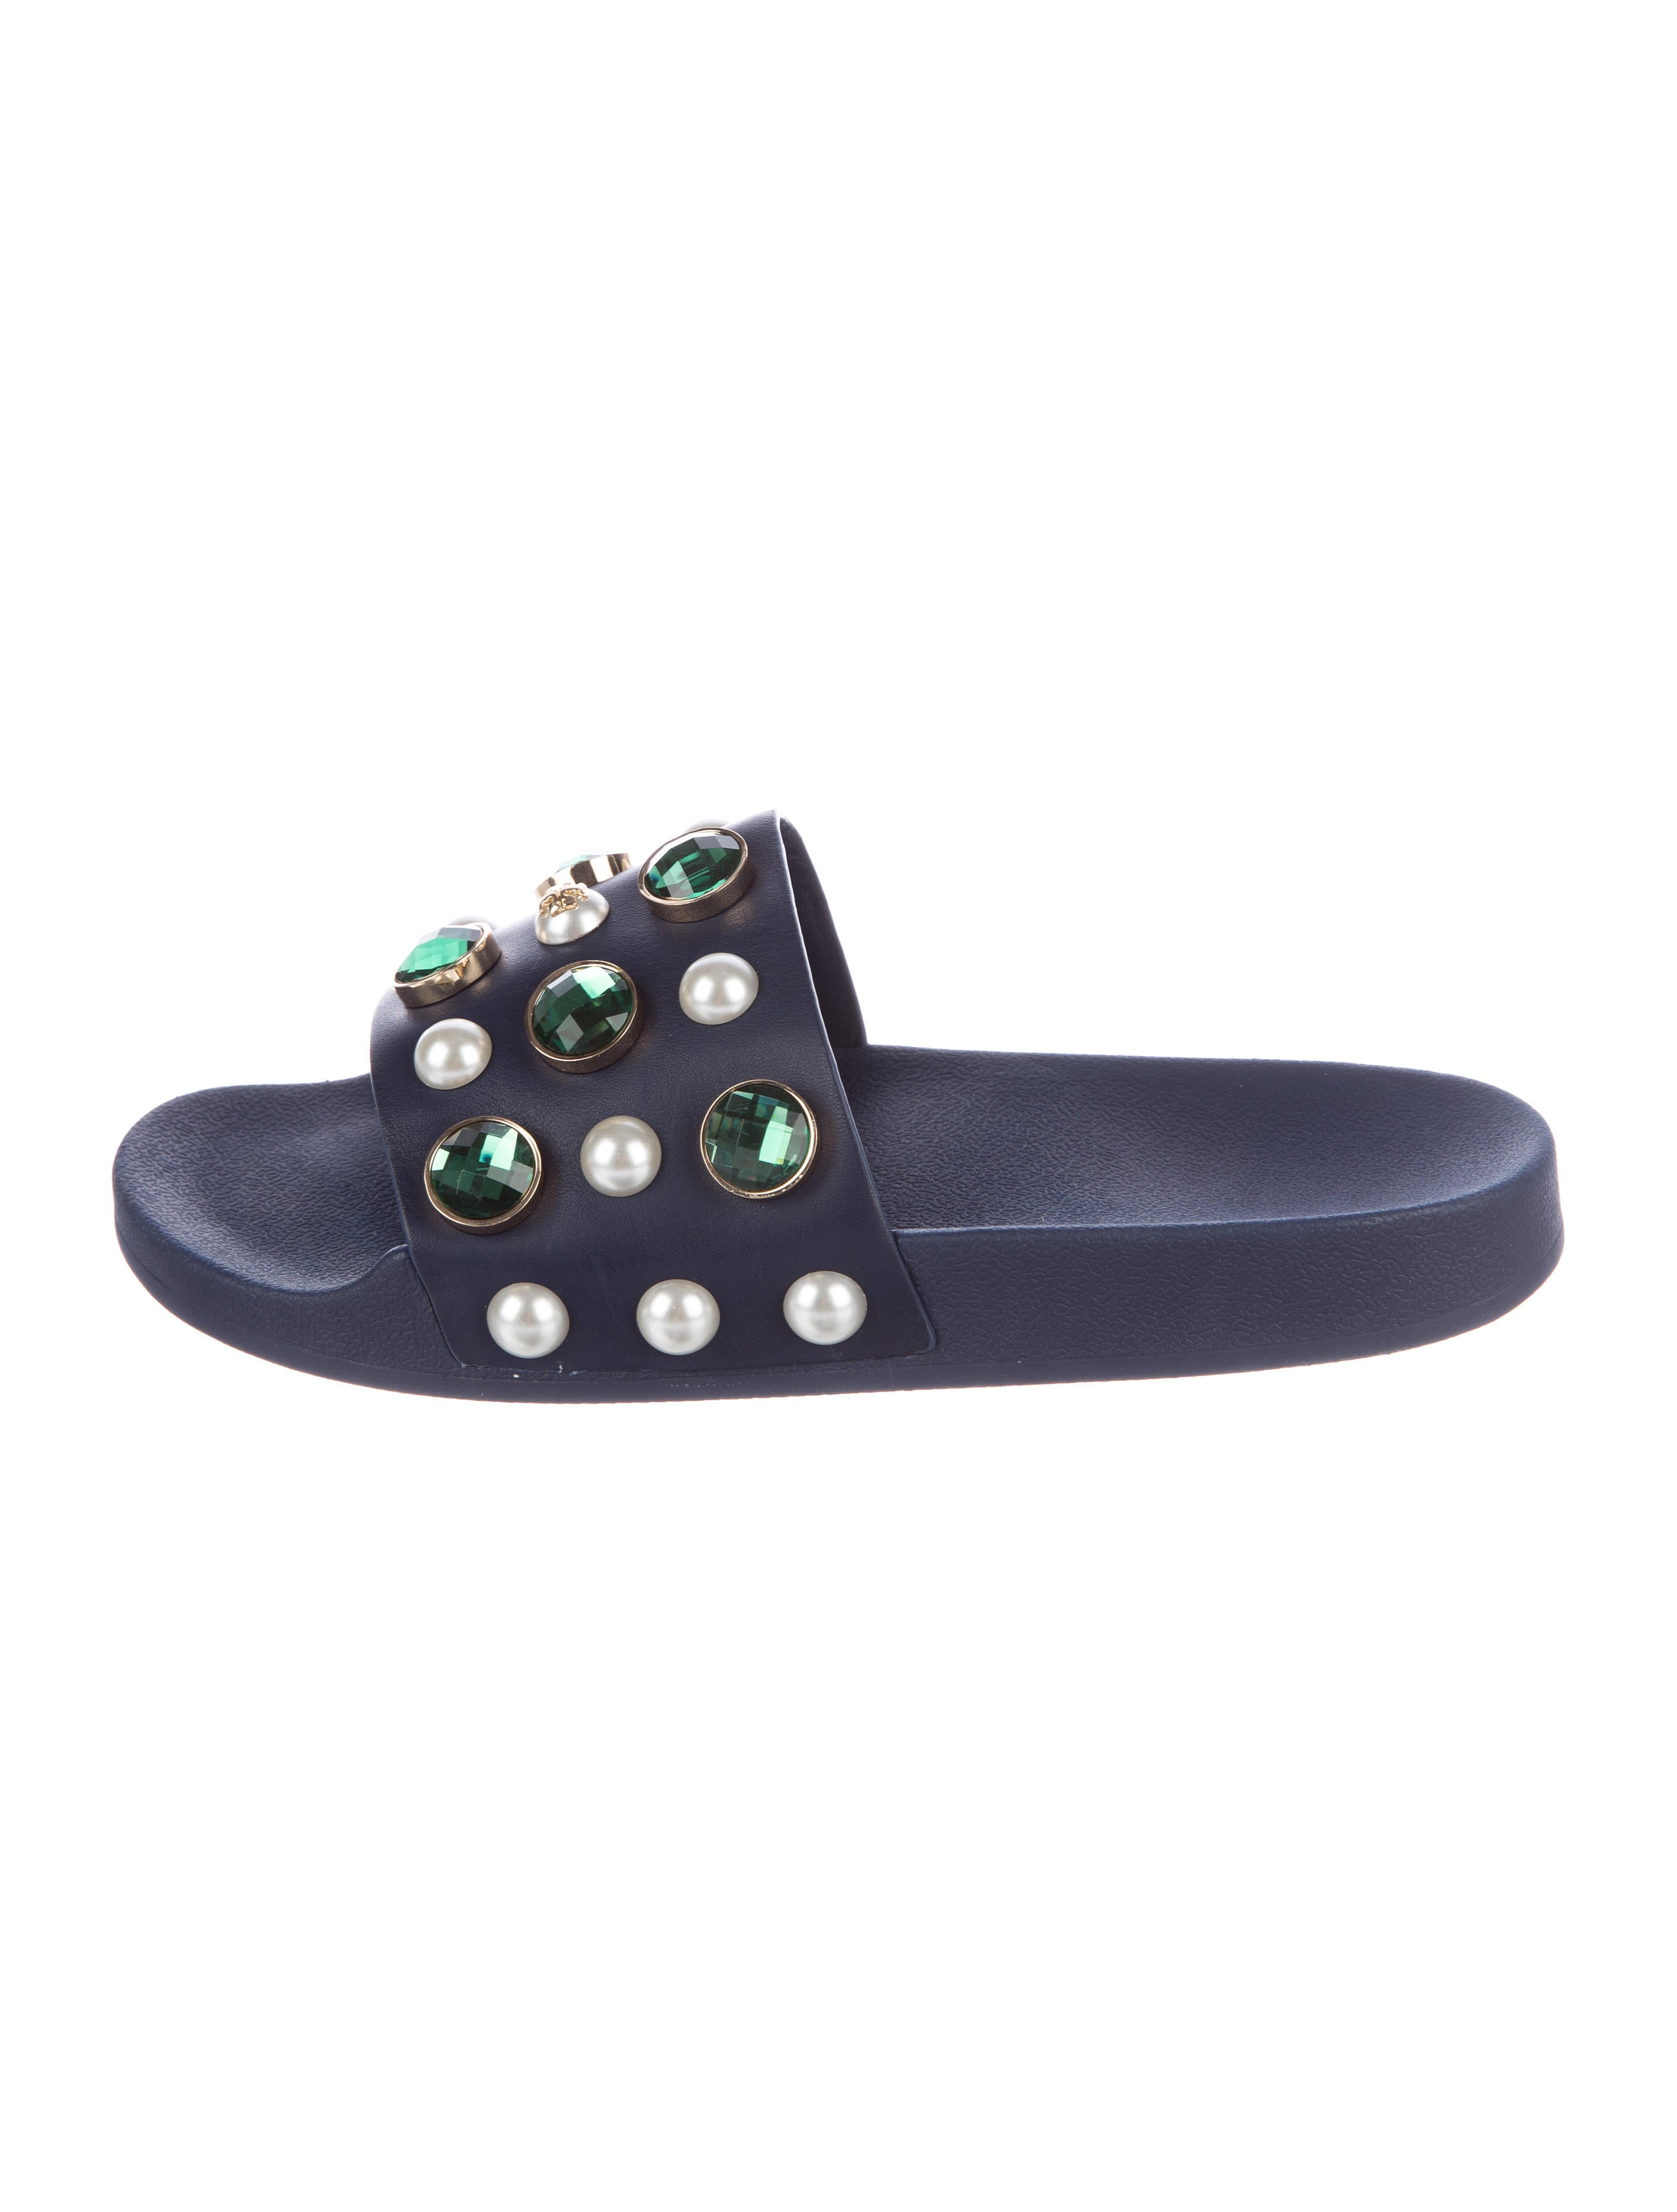 Tory Burch Woman Crystal And Faux Pearl-embellished Leather Slides Navy Size 6 Tory Burch Cheap Choice Unisex Big Sale Outlet Store Online Supply Cheap Online vXp5yd73